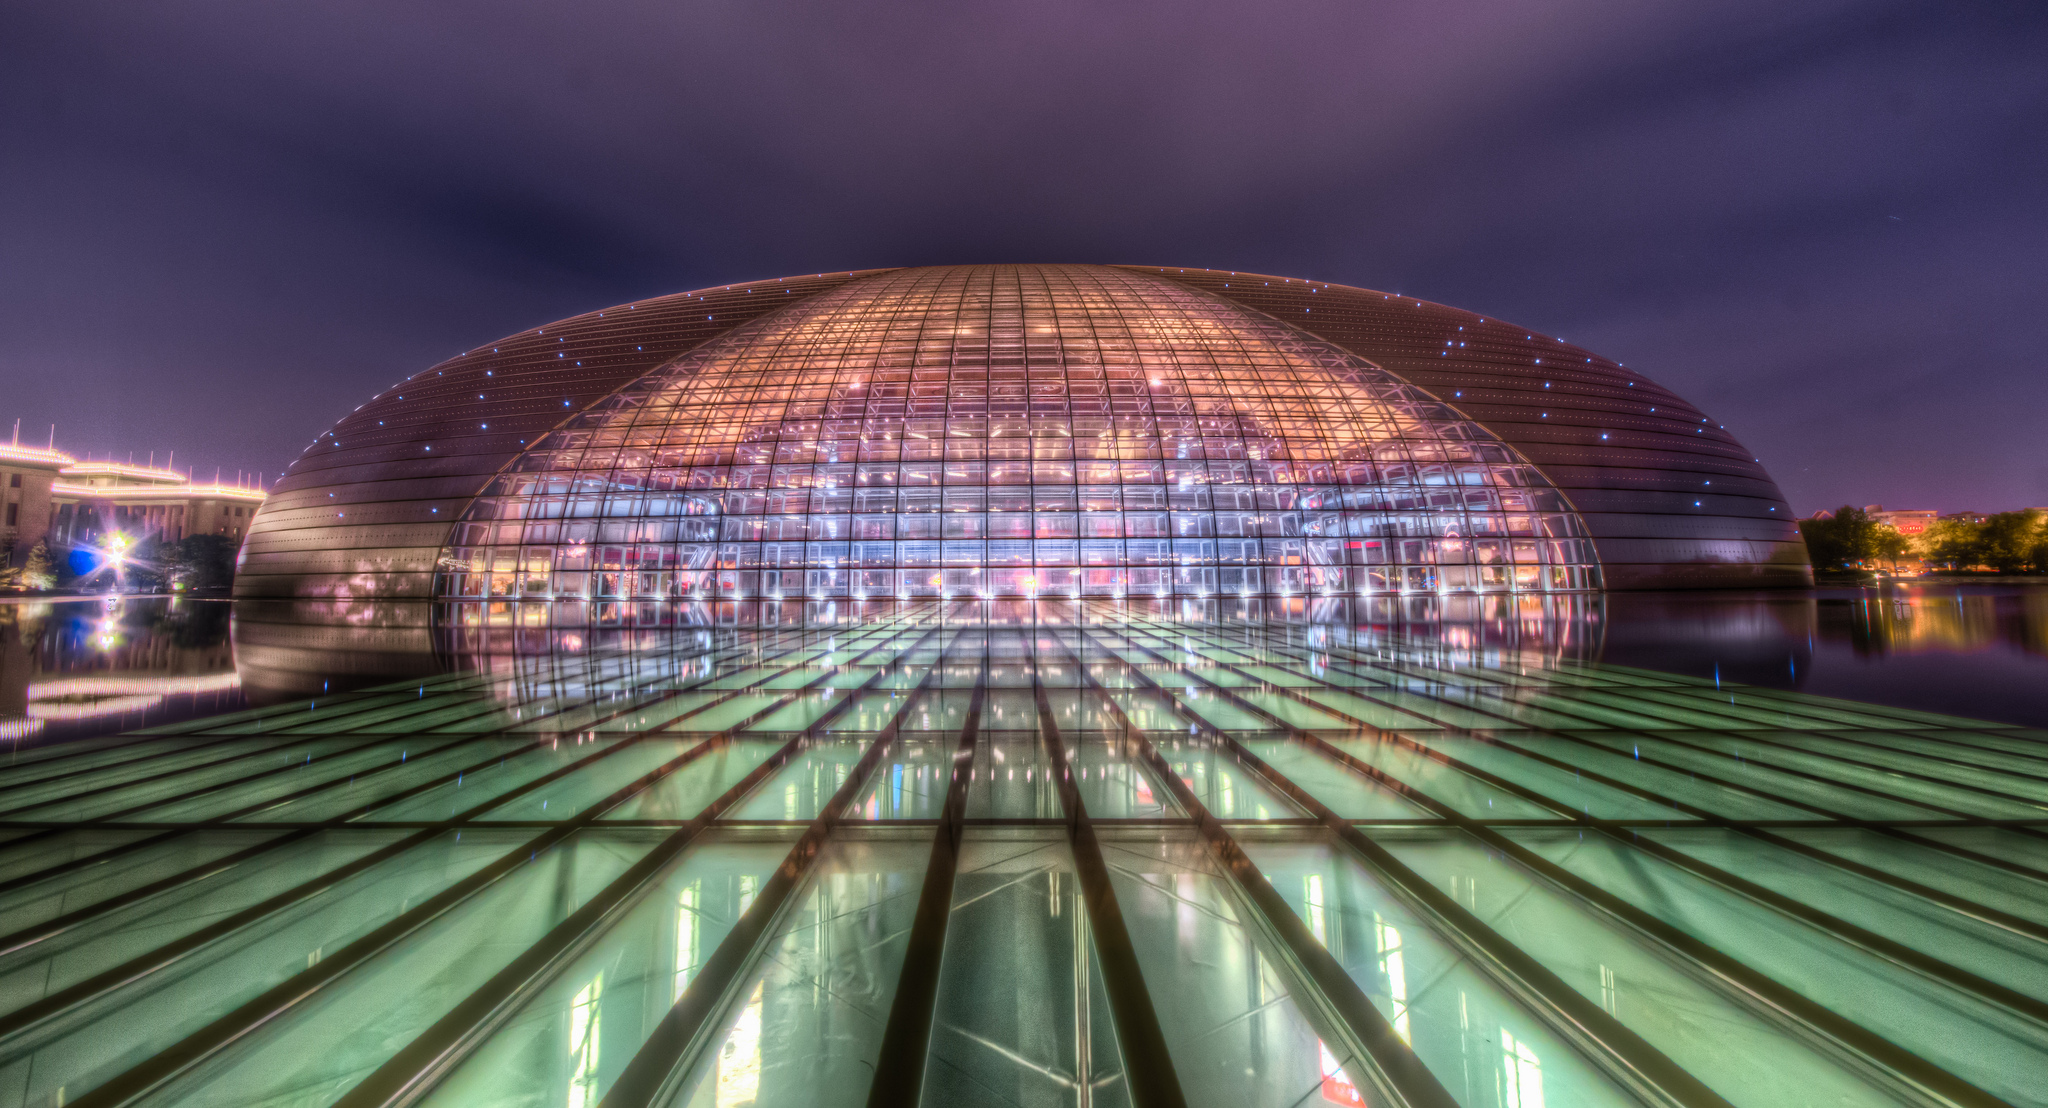 Beijing Performing Arts Centre